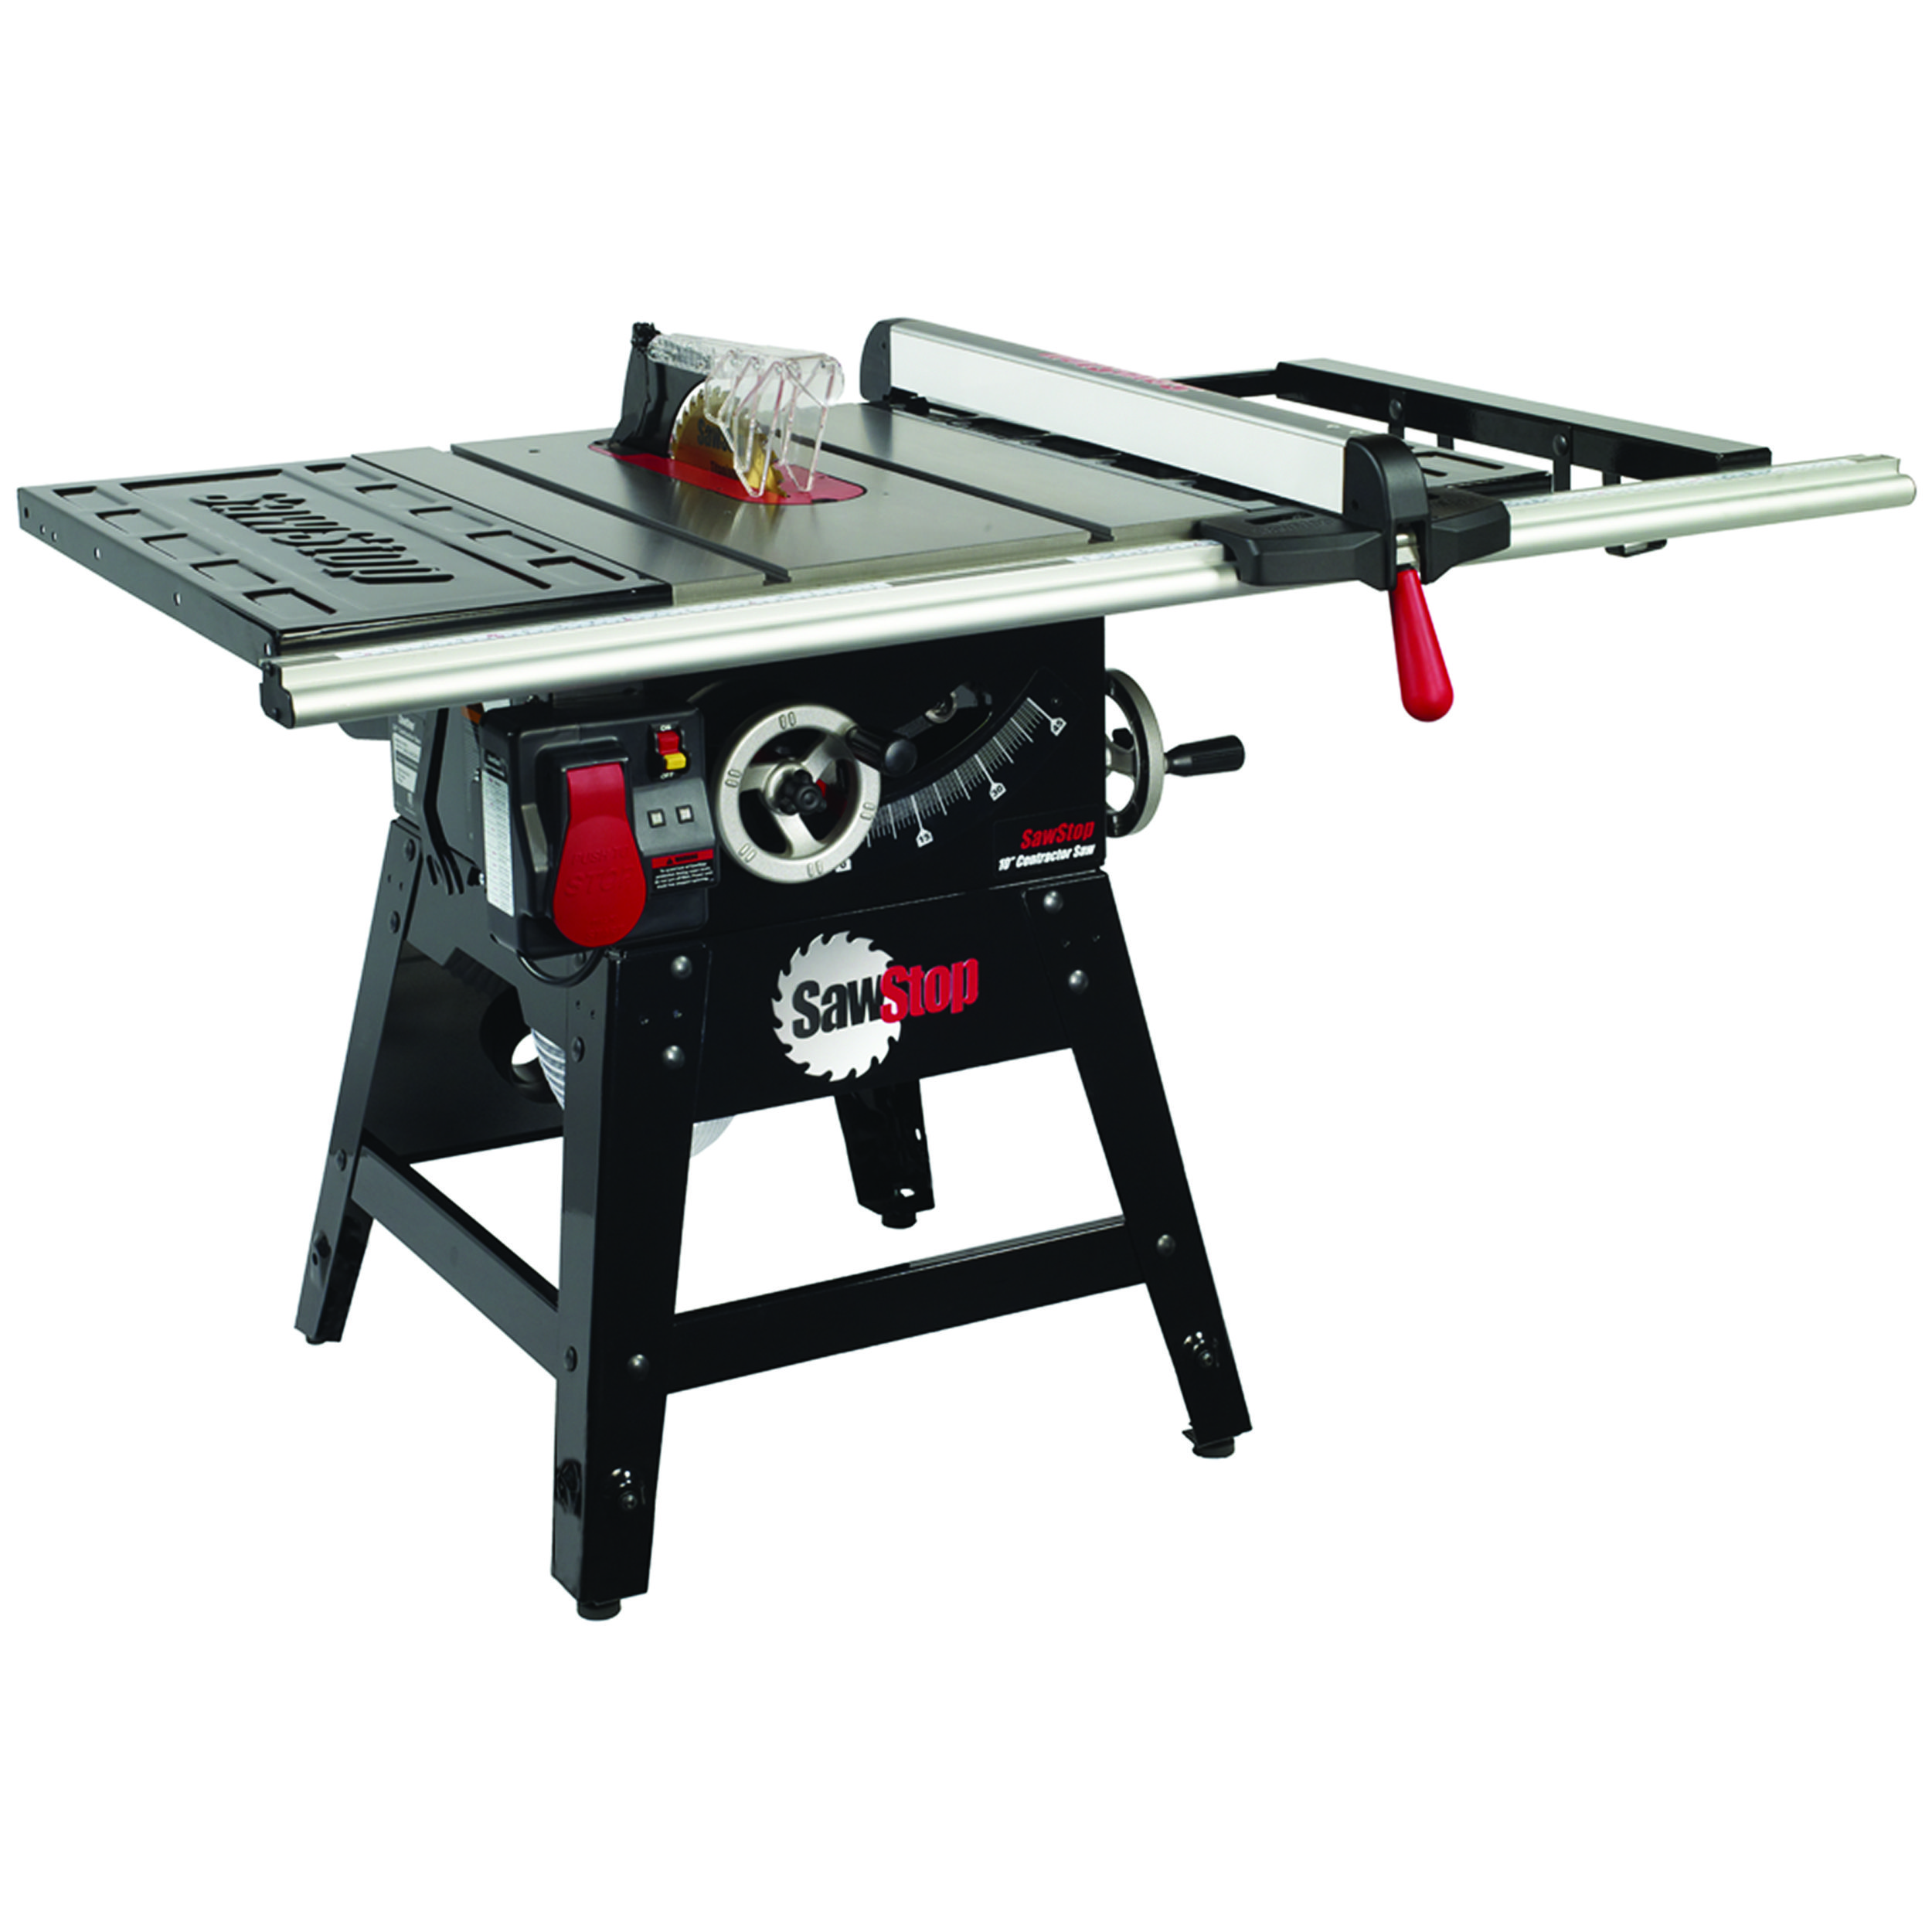 Contractor Saw With 30 Aluminum Extrusion Fence System Model Cns175 Sfa30 Used Woodworking Tools Contractor Table Saw Woodworking Saws